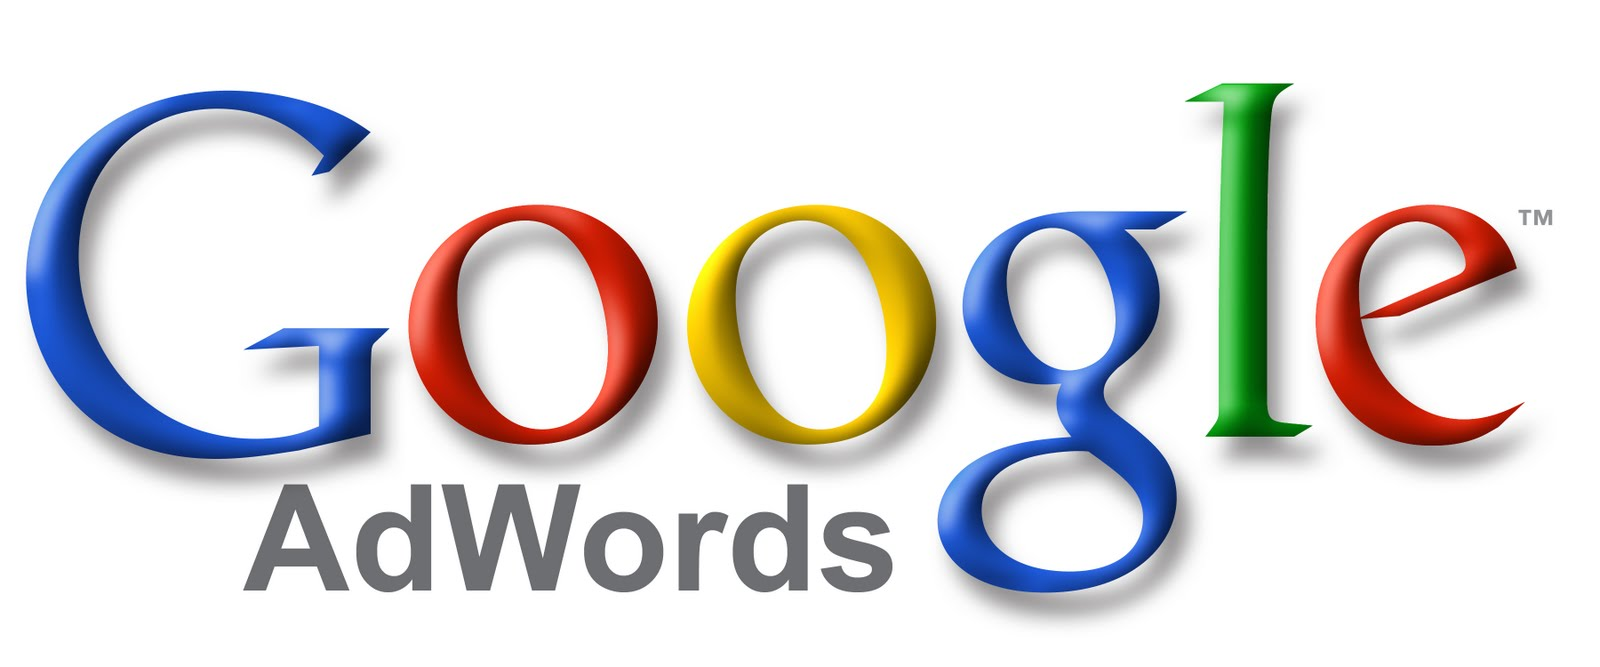 Google Ad Words Ads to Undergo Significant Makeover This Month